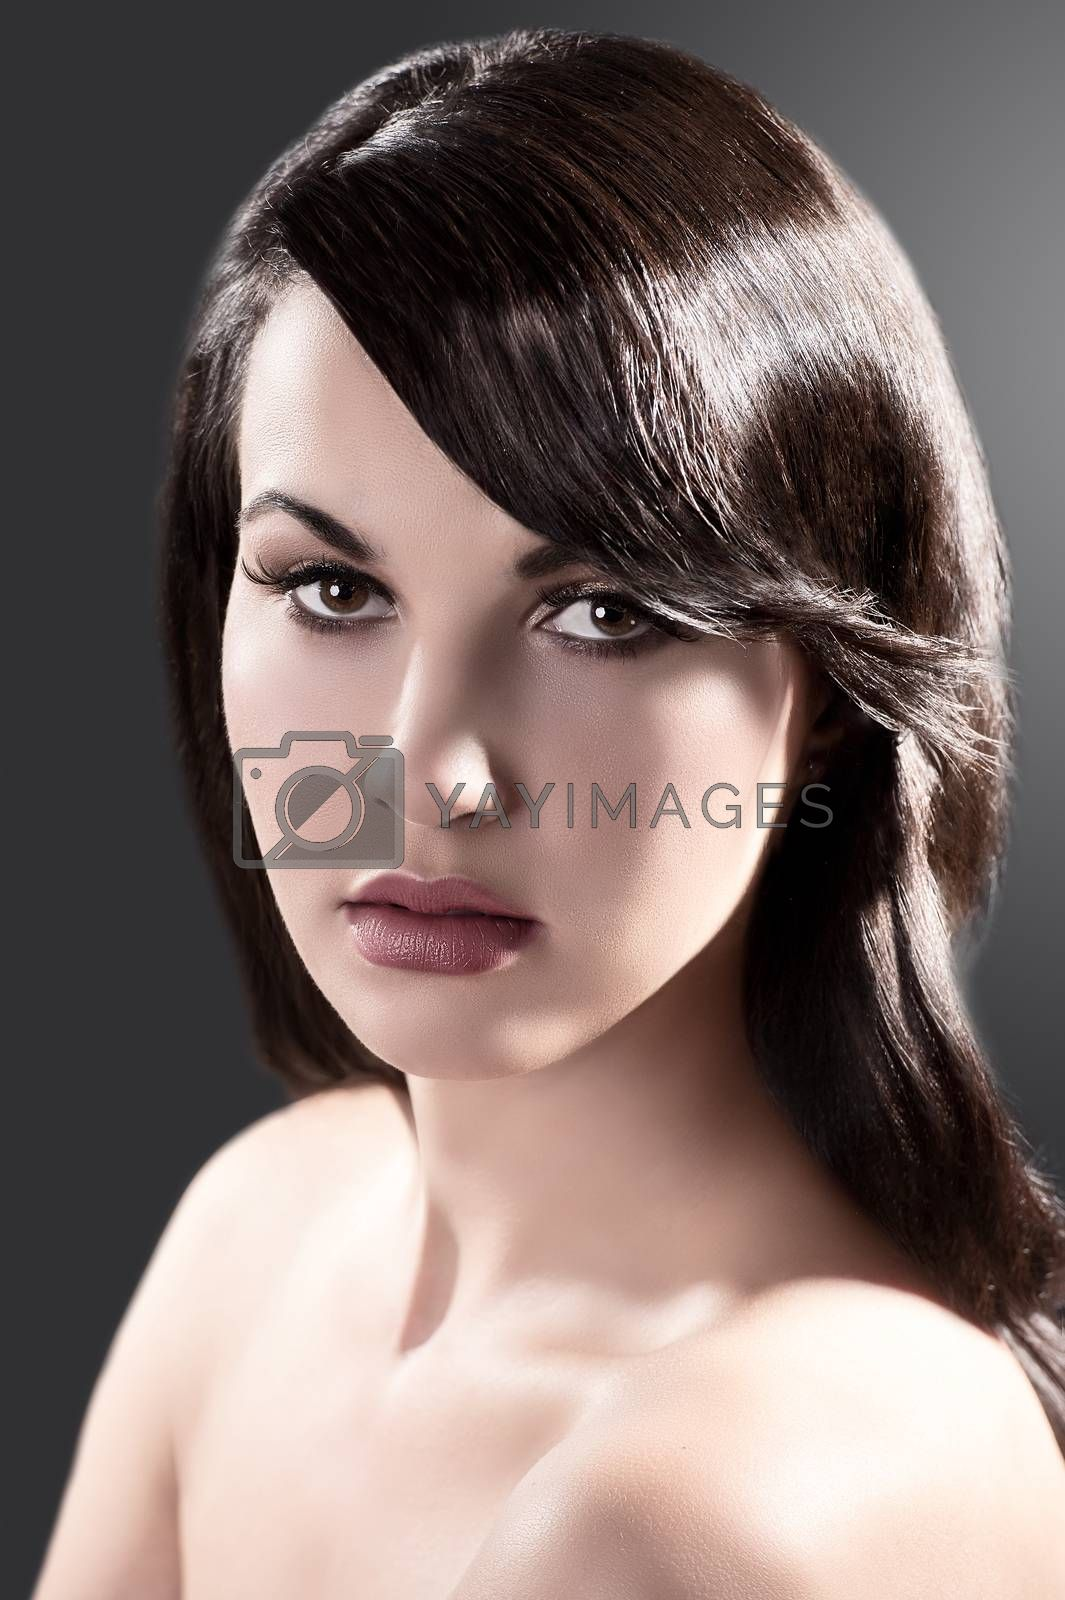 Royalty free image of beauty portrait of a brunette  by fotoCD